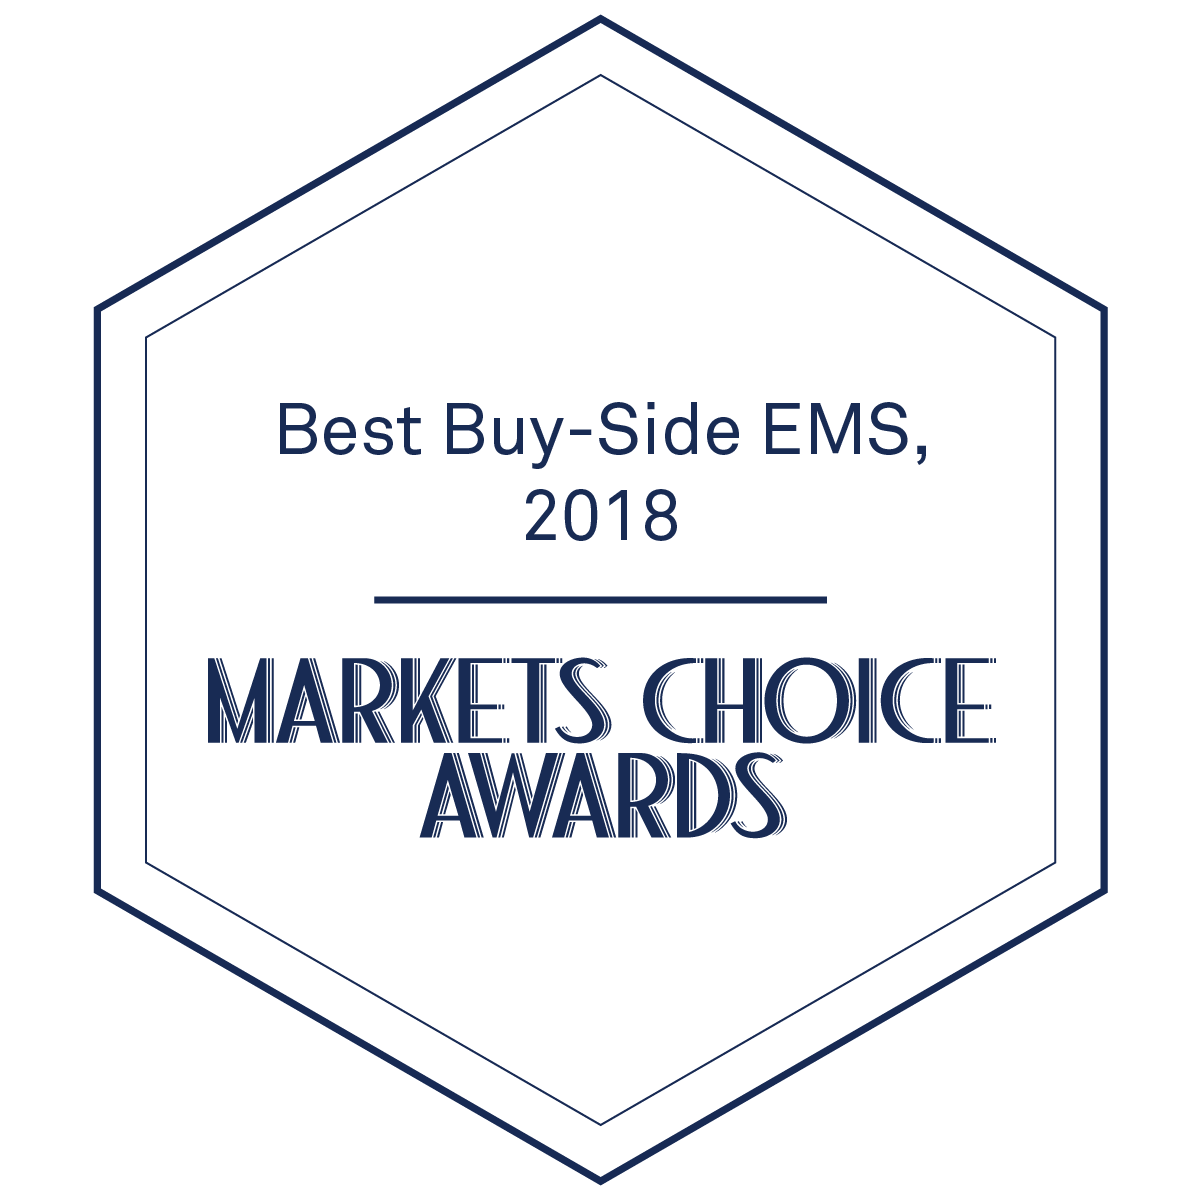 Markets Media Markets Choice Awards Best Buy-Side EMS 2018